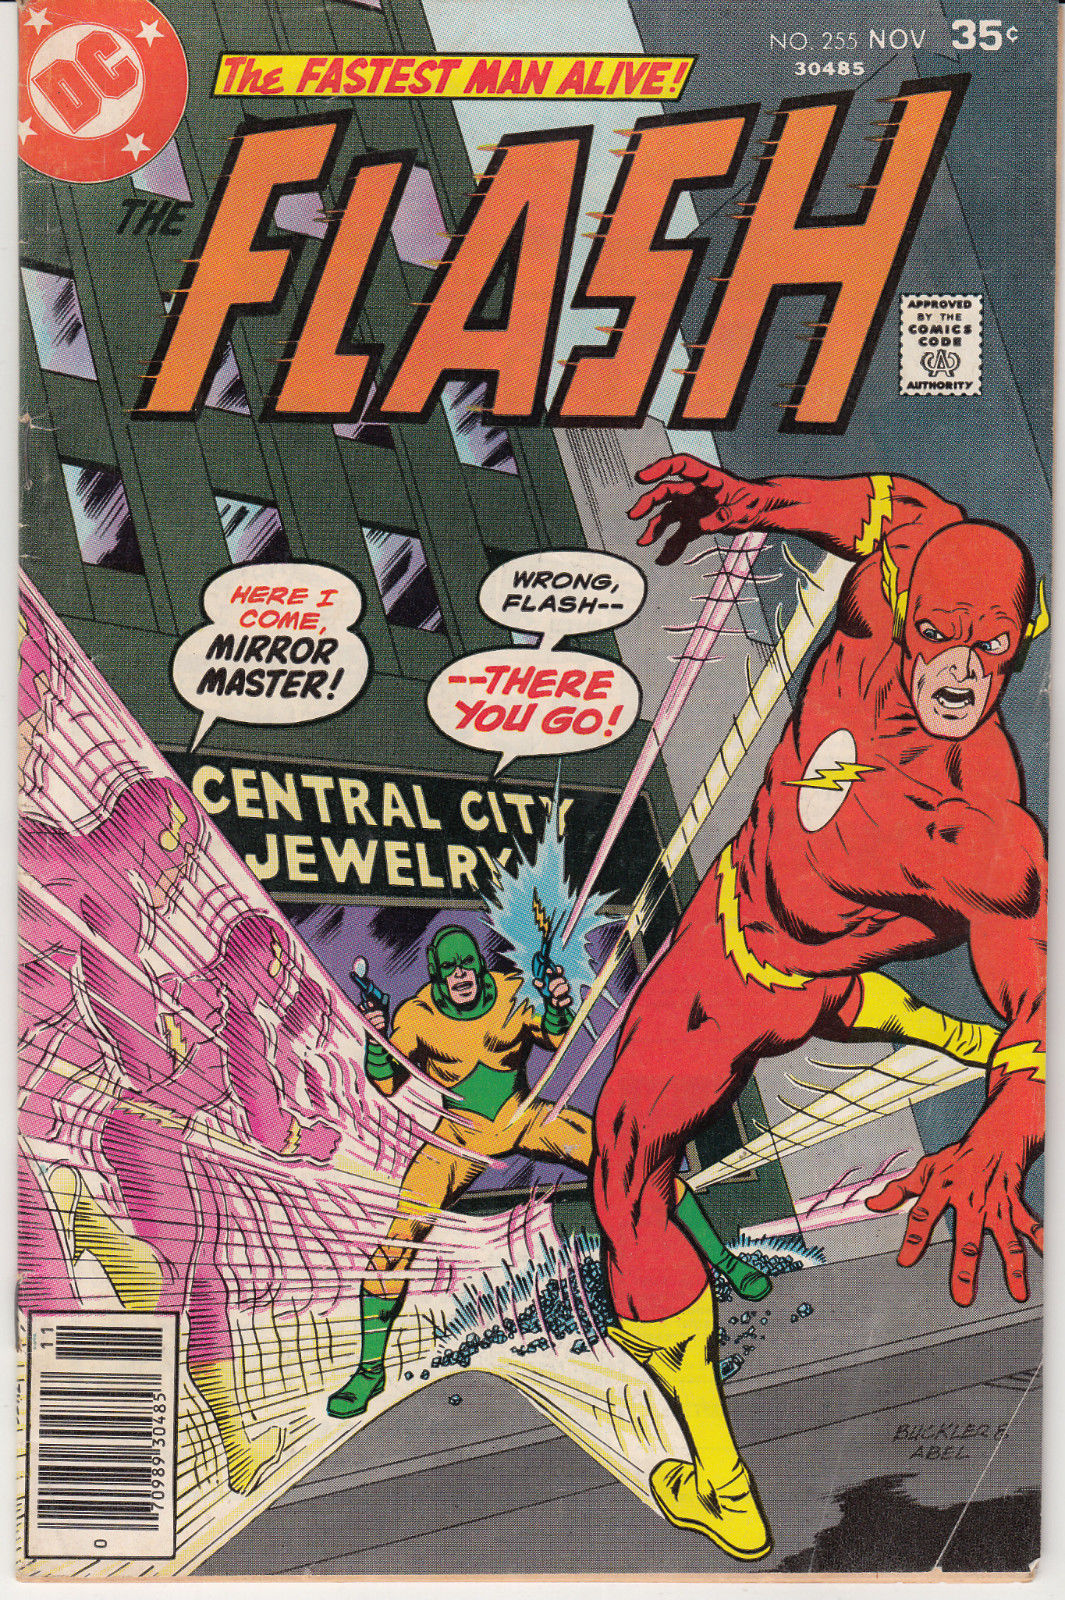 1977 DC Comics The Flash #255